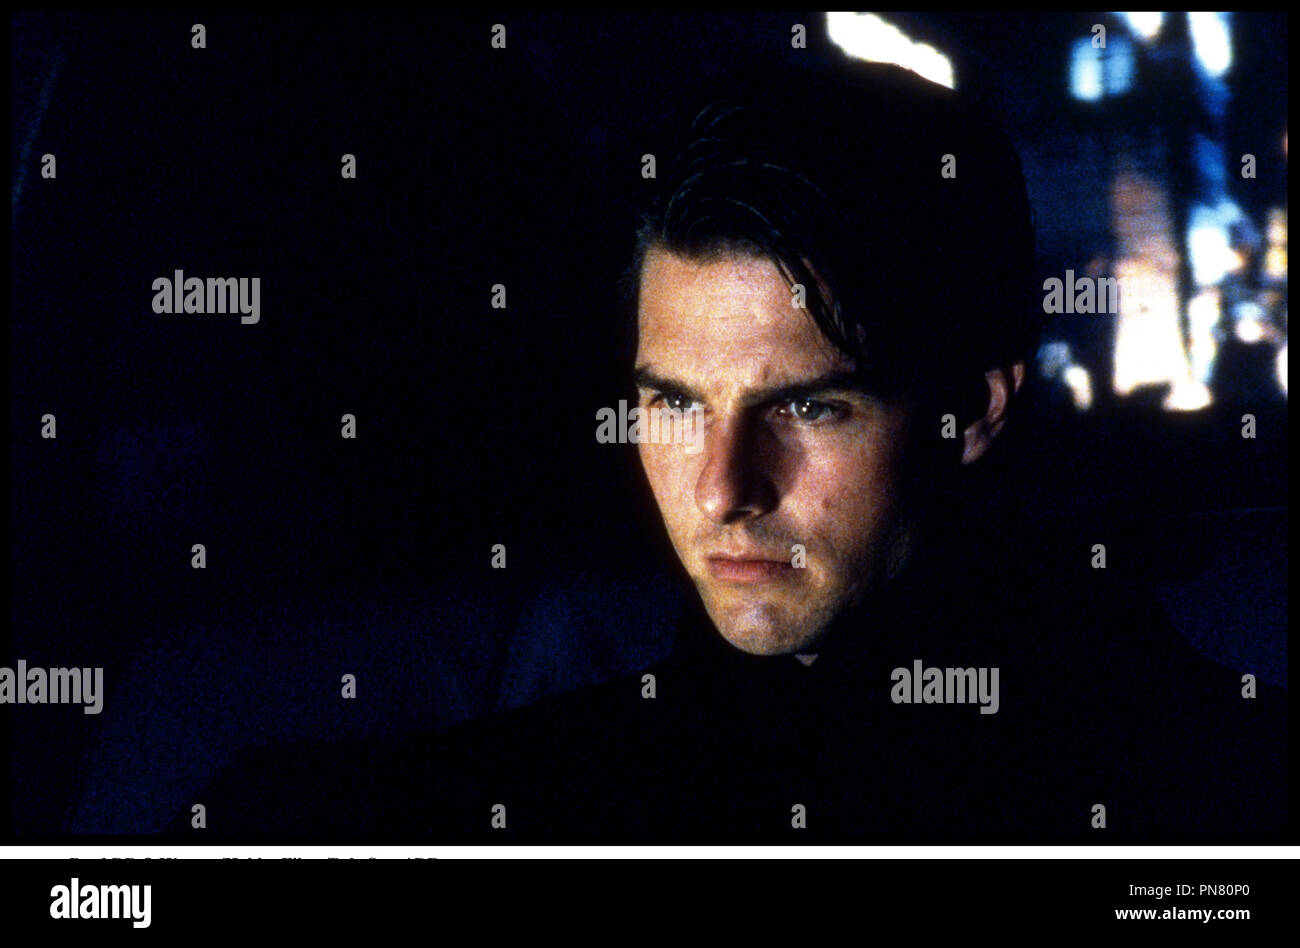 Prod DB © Warner/Hobby Films/Pole Star / DR EYES WIDE SHUT (EYES WIDE SHUT) de Stanley Kubrick 1999 USA / GB avec Tom Cruise d'apres le roman de Arthur Schnitzler 'TRAUMNOVELLE' - Stock Image